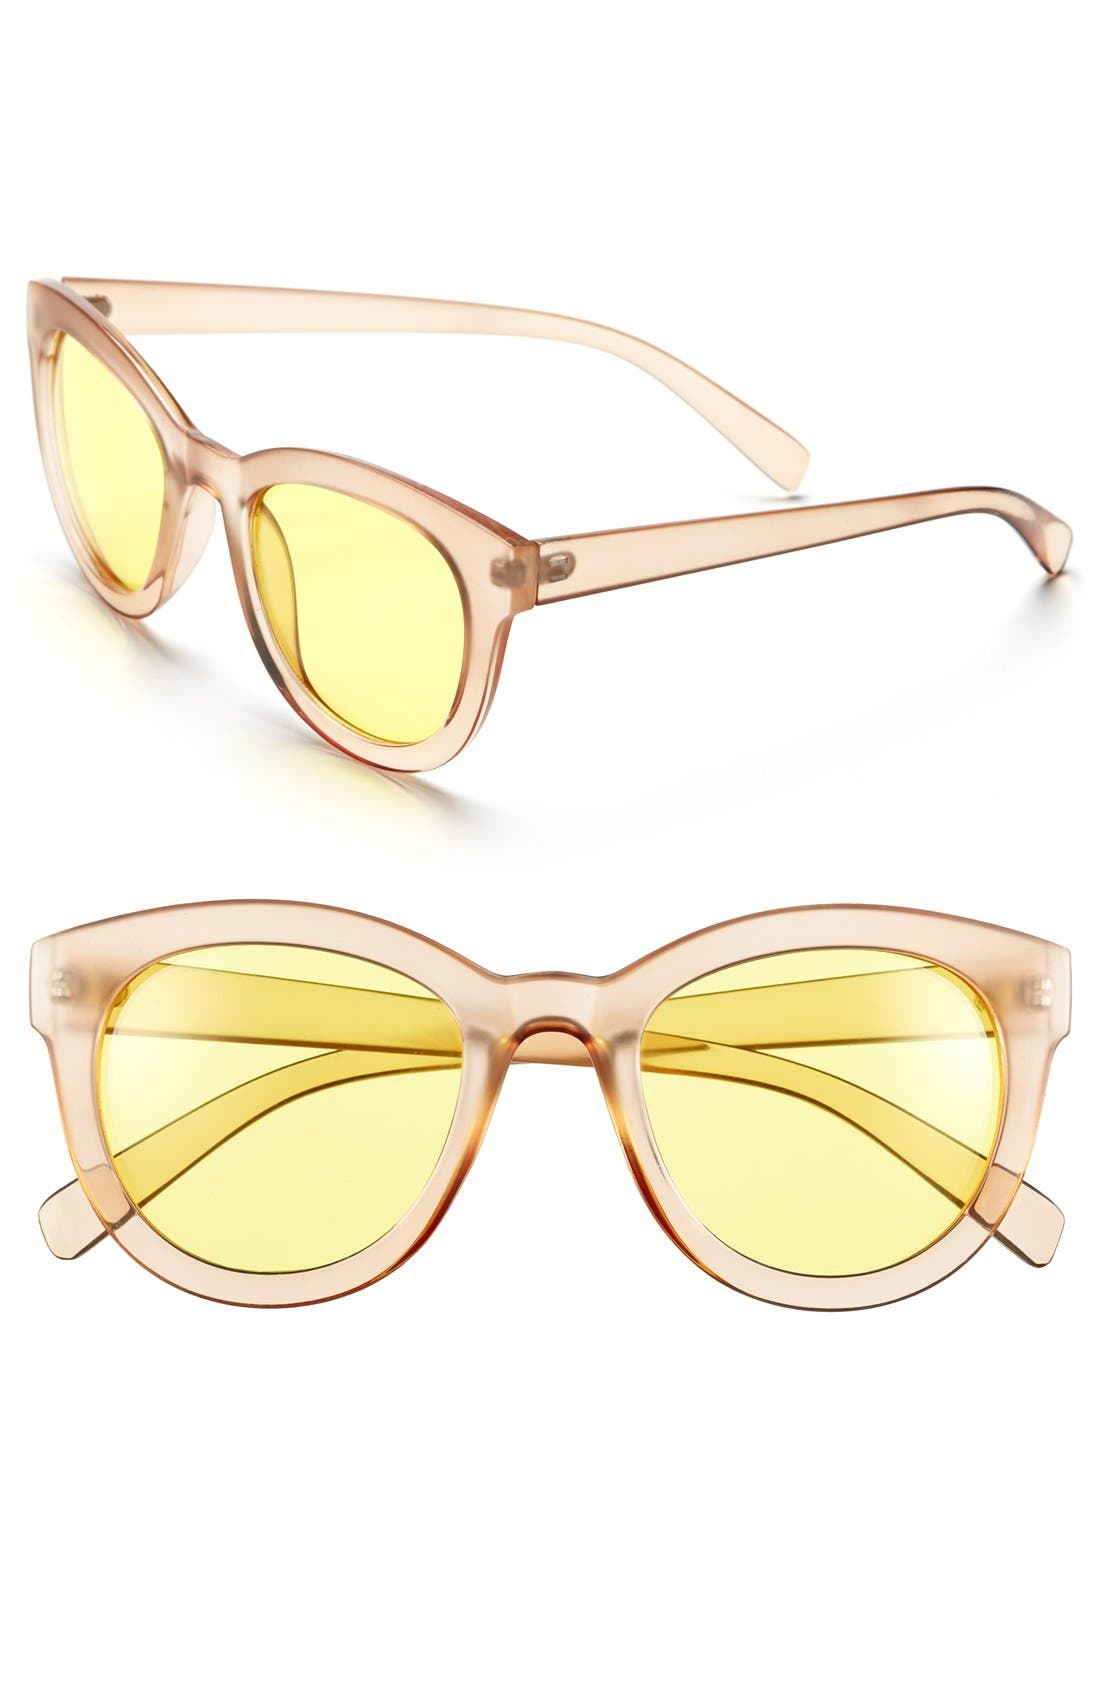 Alternate Image 1 Selected - FE NY 51mm Sunglasses